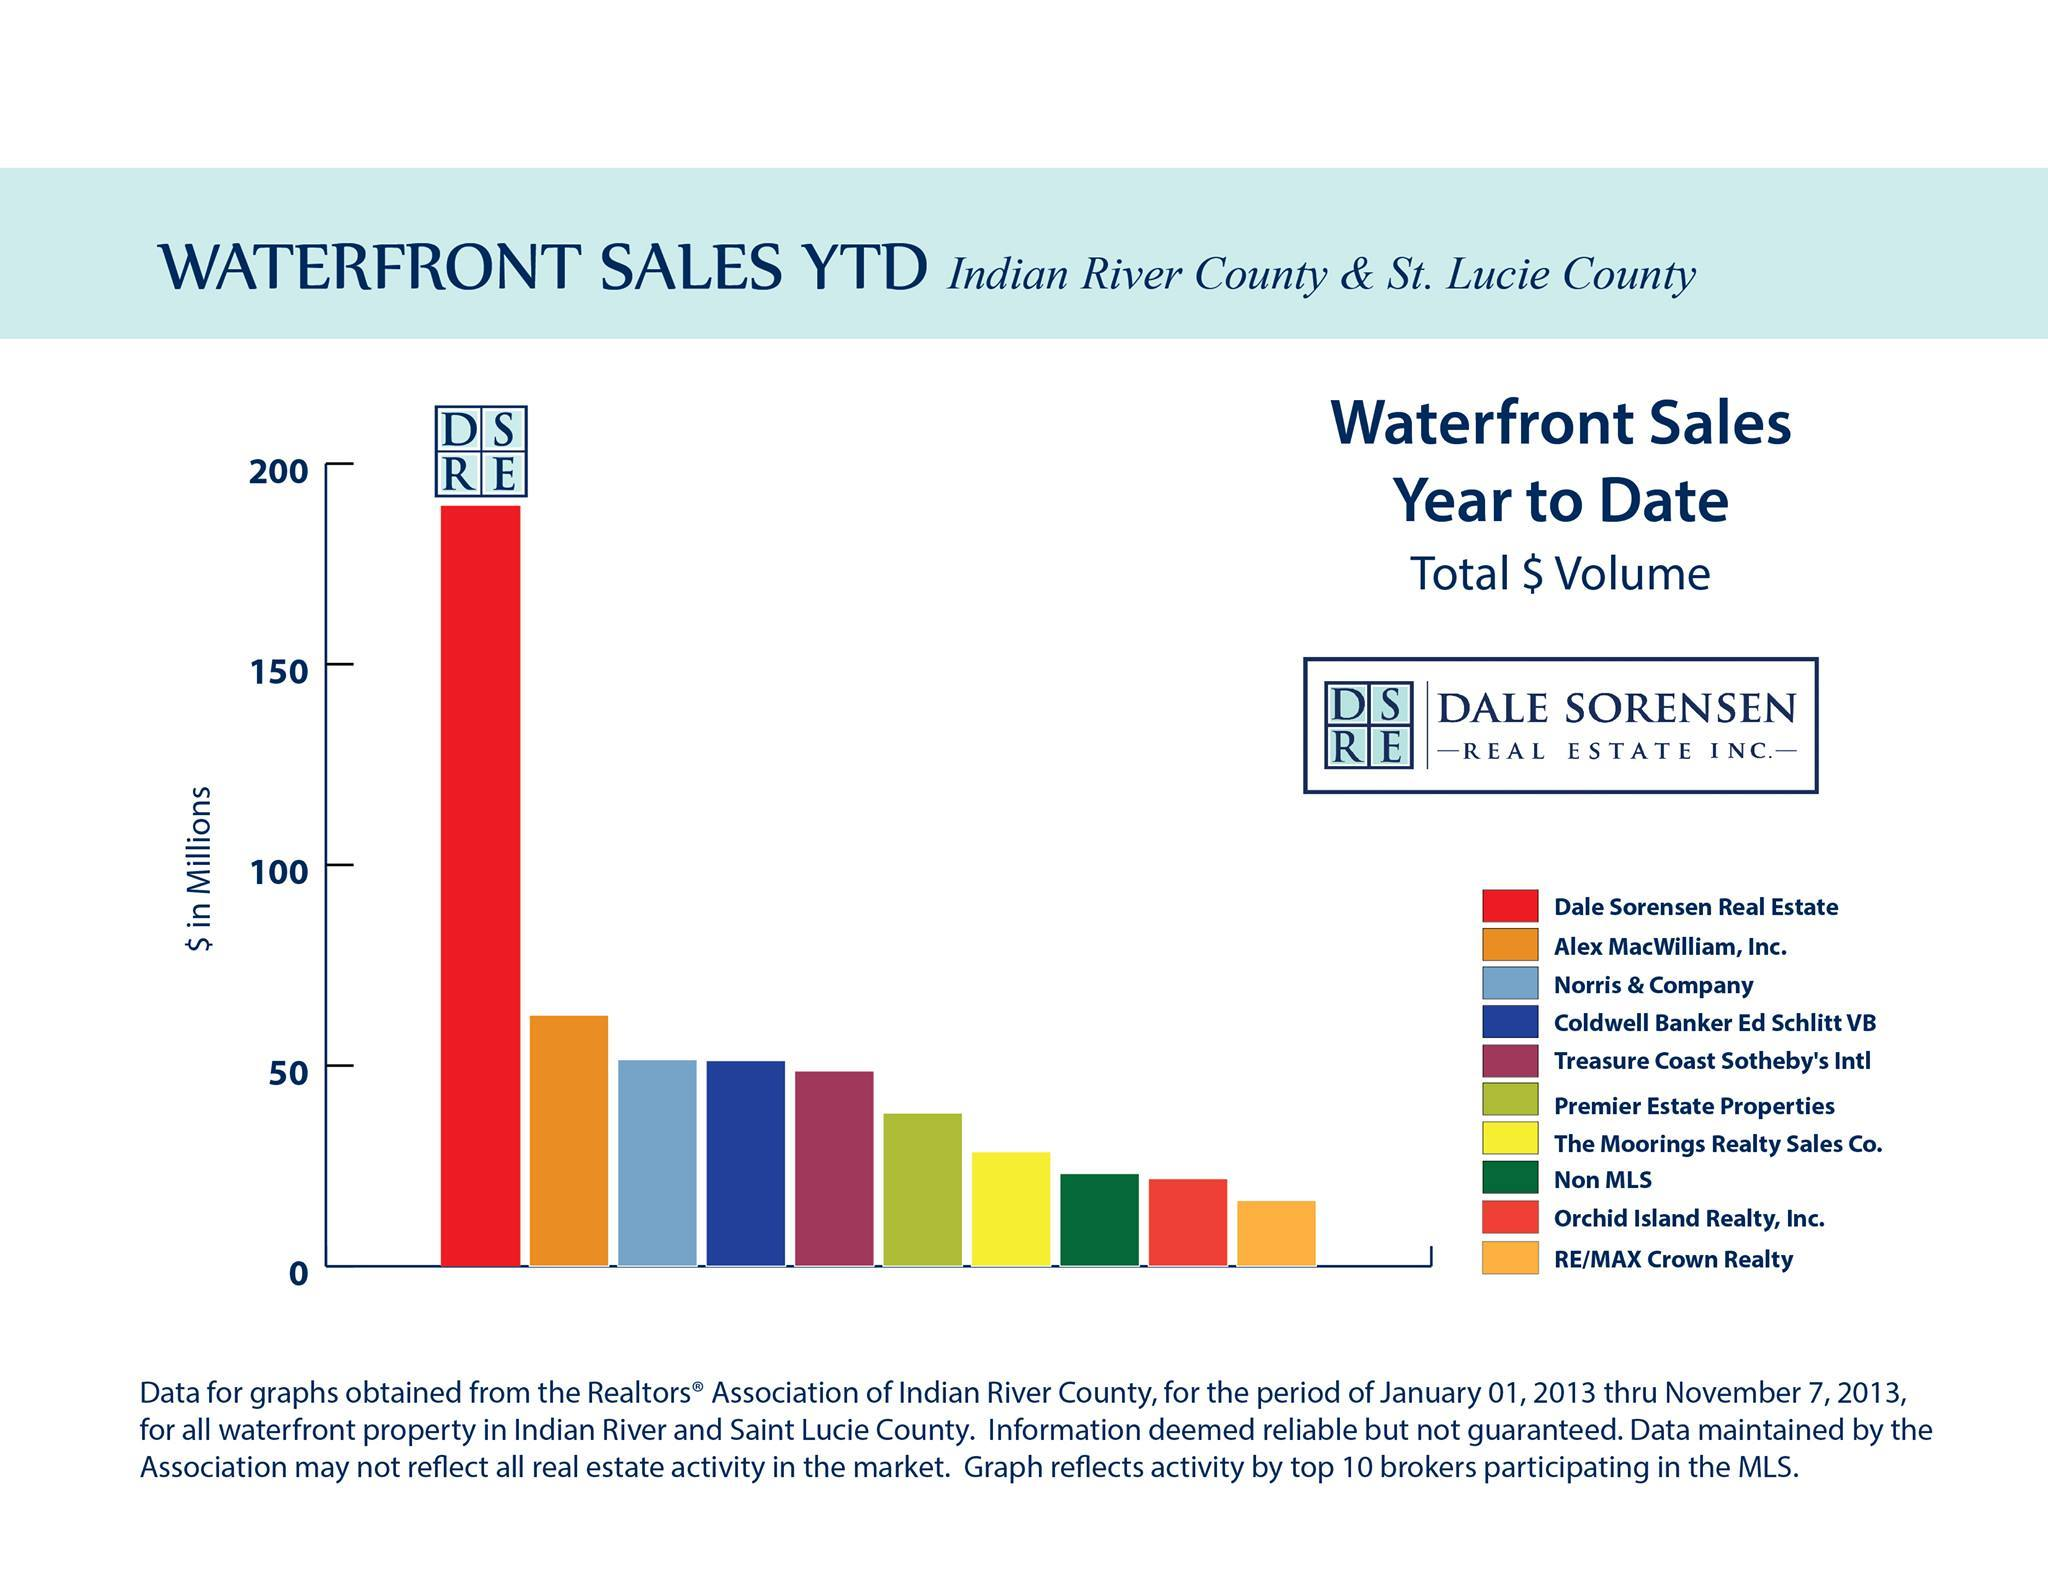 Waterfront Sales Vero Beach Florida With Dale Sorensen Real Estate